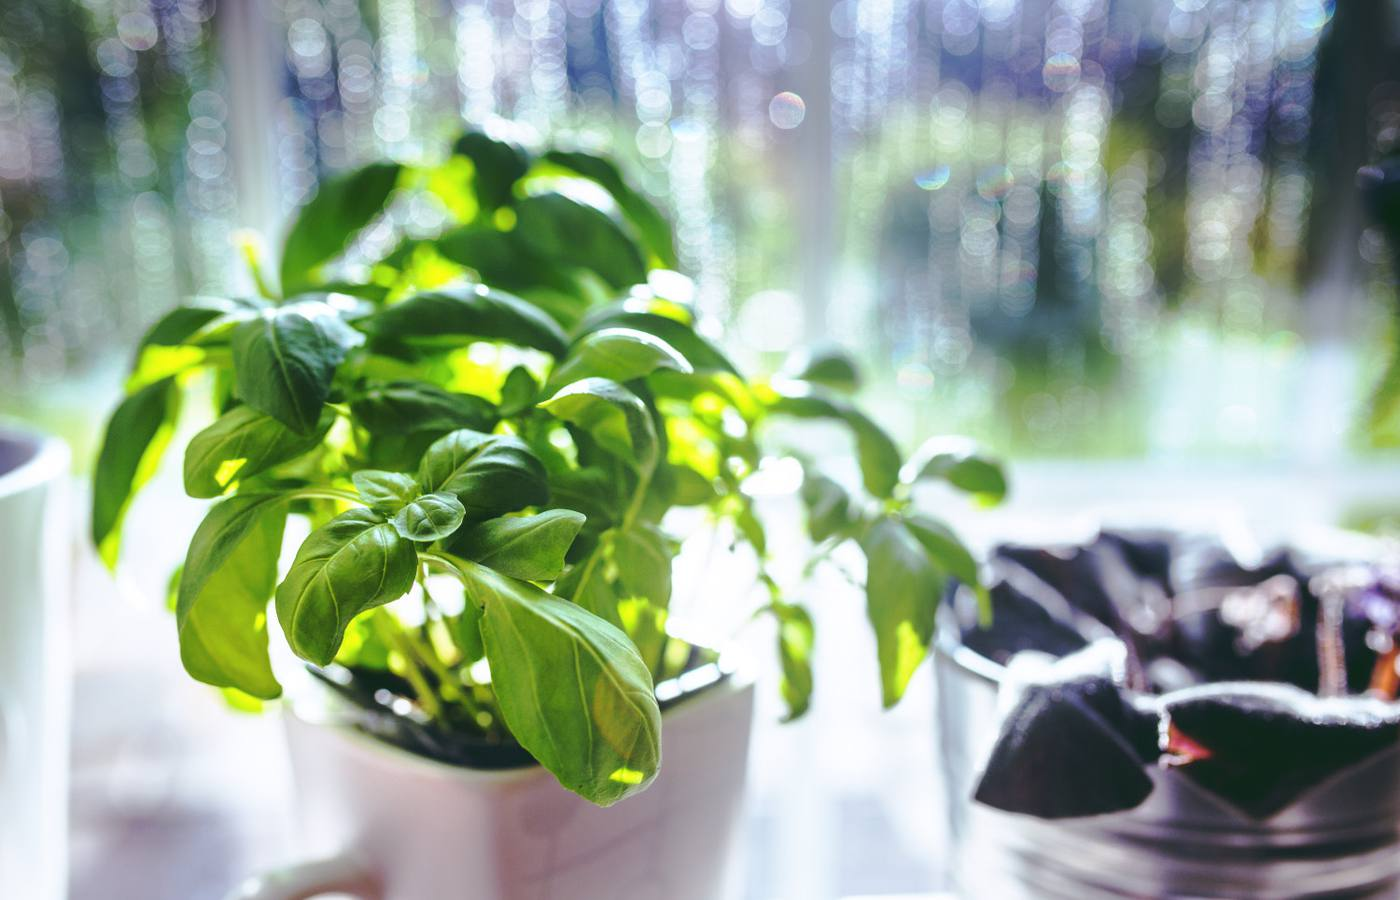 Harvesting and drying your garden's herbs